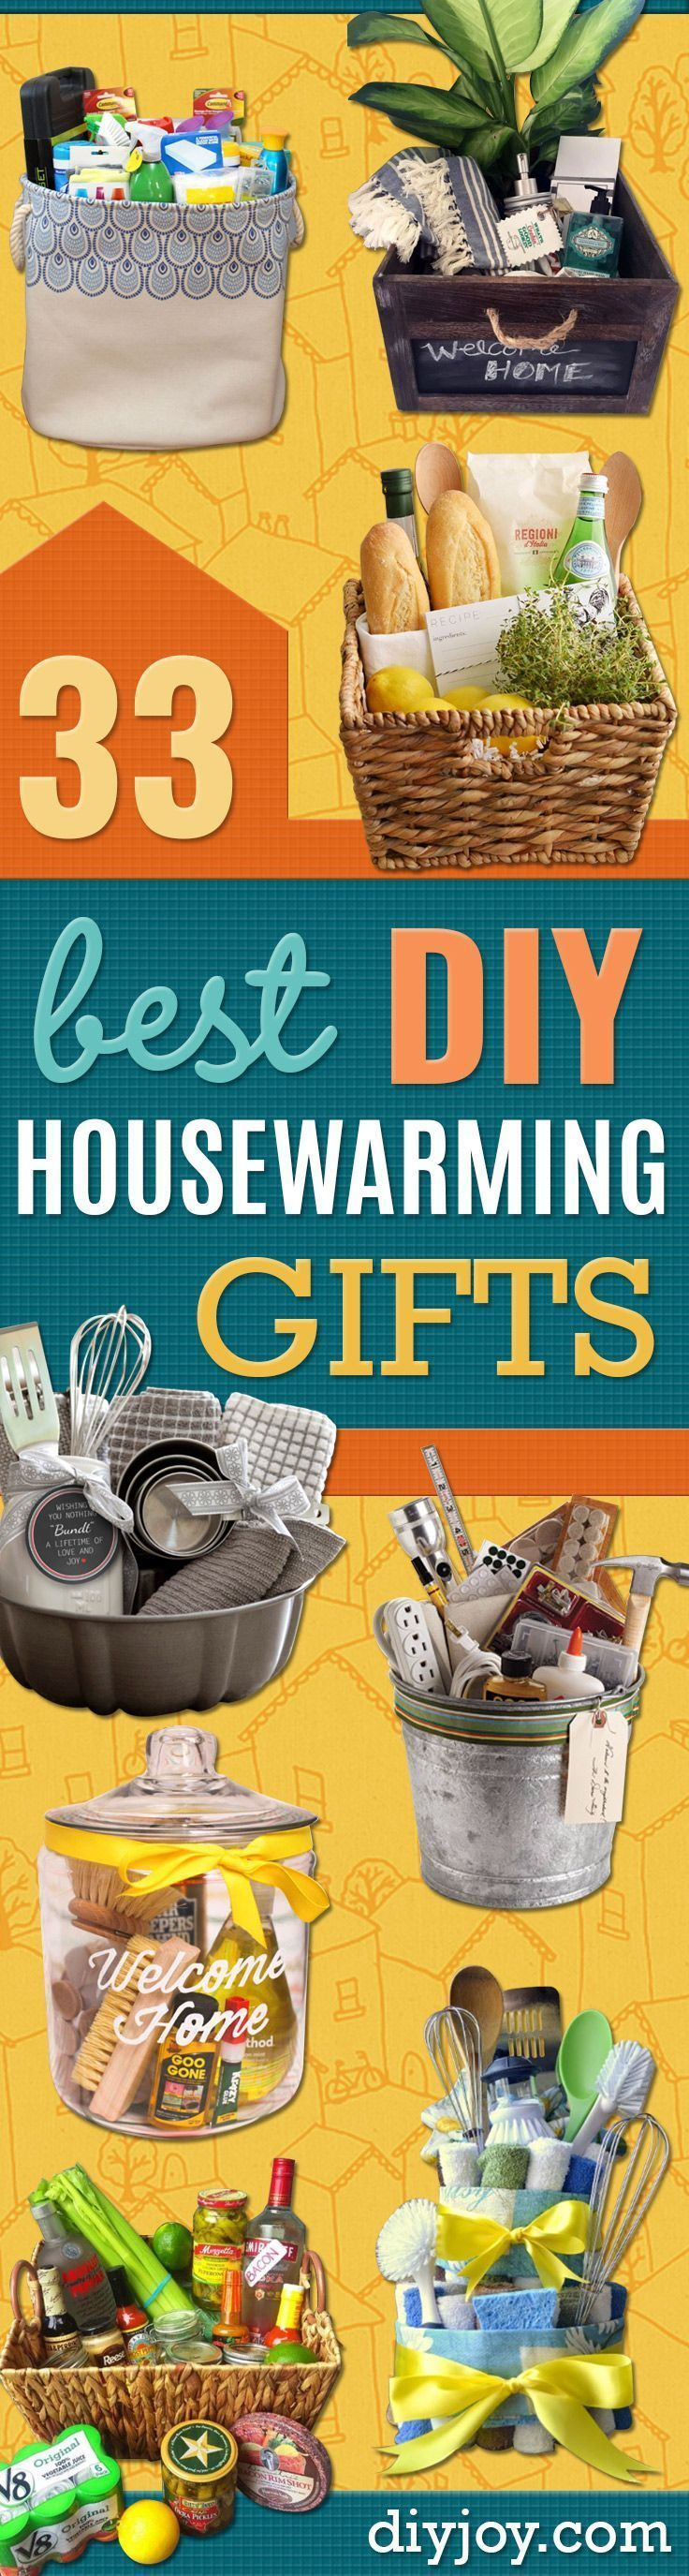 25 Best Ideas About Housewarming Gifts For Men On